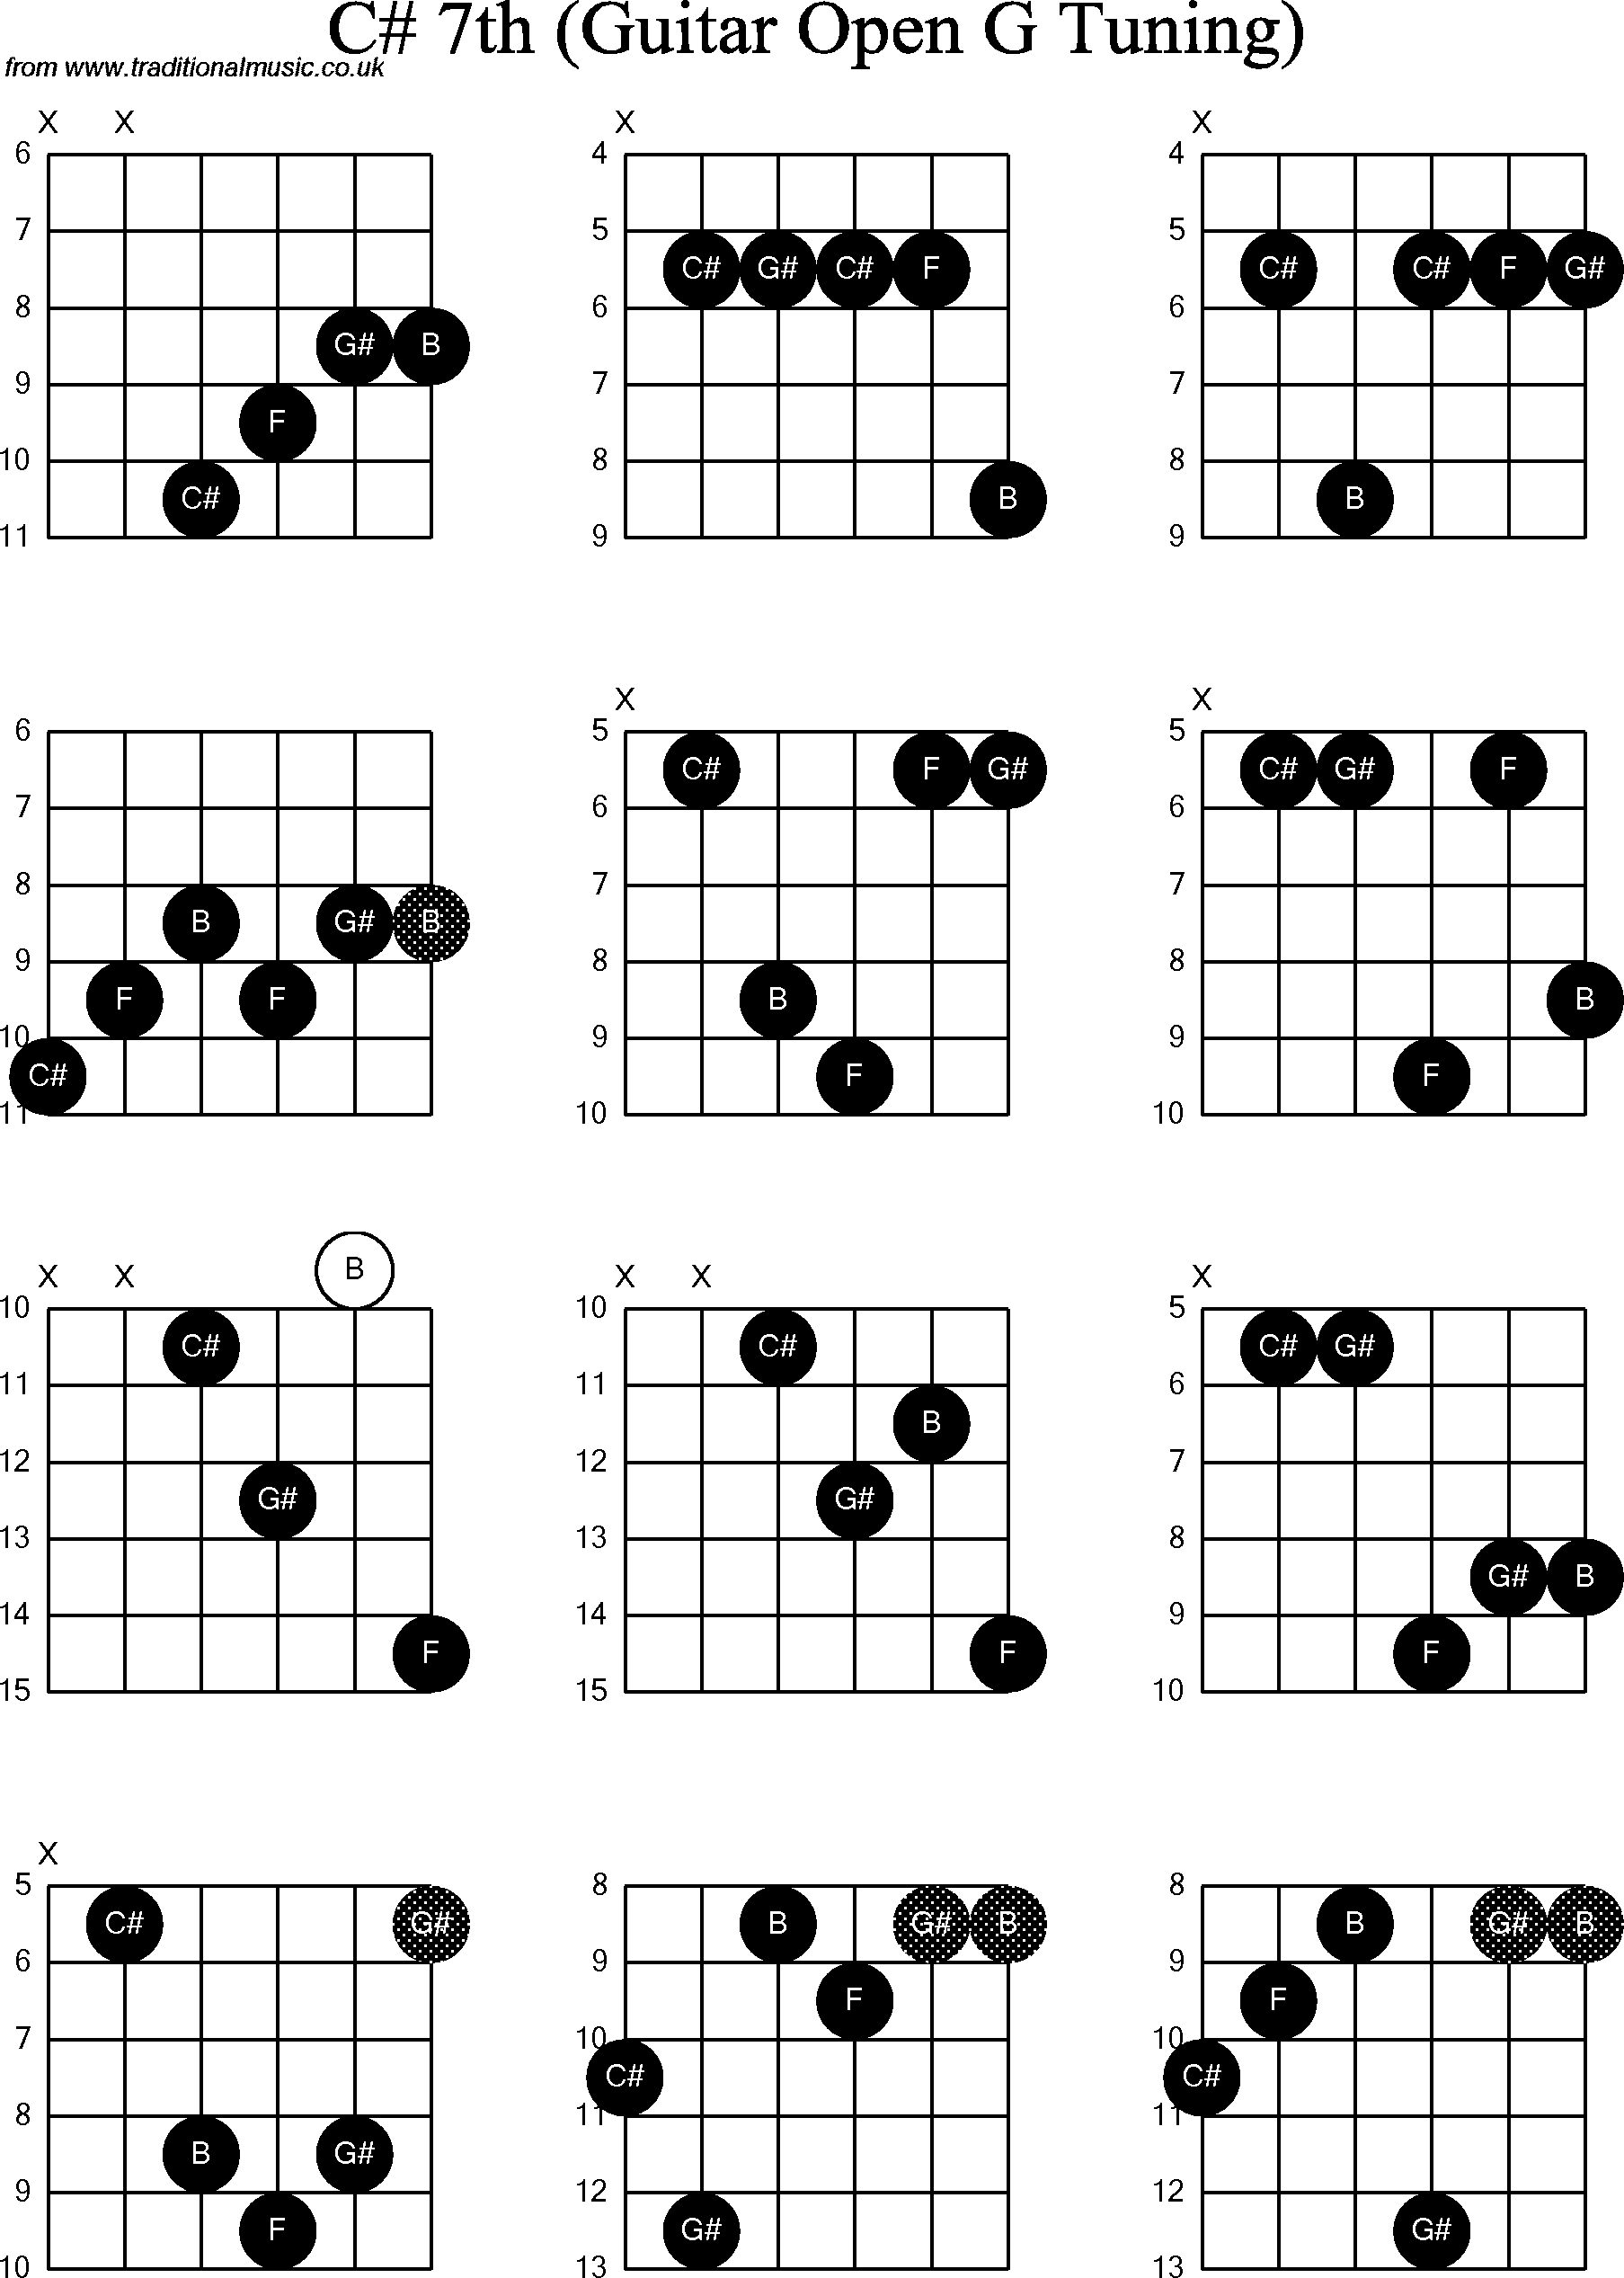 Cchords likewise Guitar Charts Browser furthermore Guitar Chord Diagrams Printable additionally Old Books With Chord Progression Charts Or Matrices moreover Gastroesophageal Reflux Disease. on diagram of chords